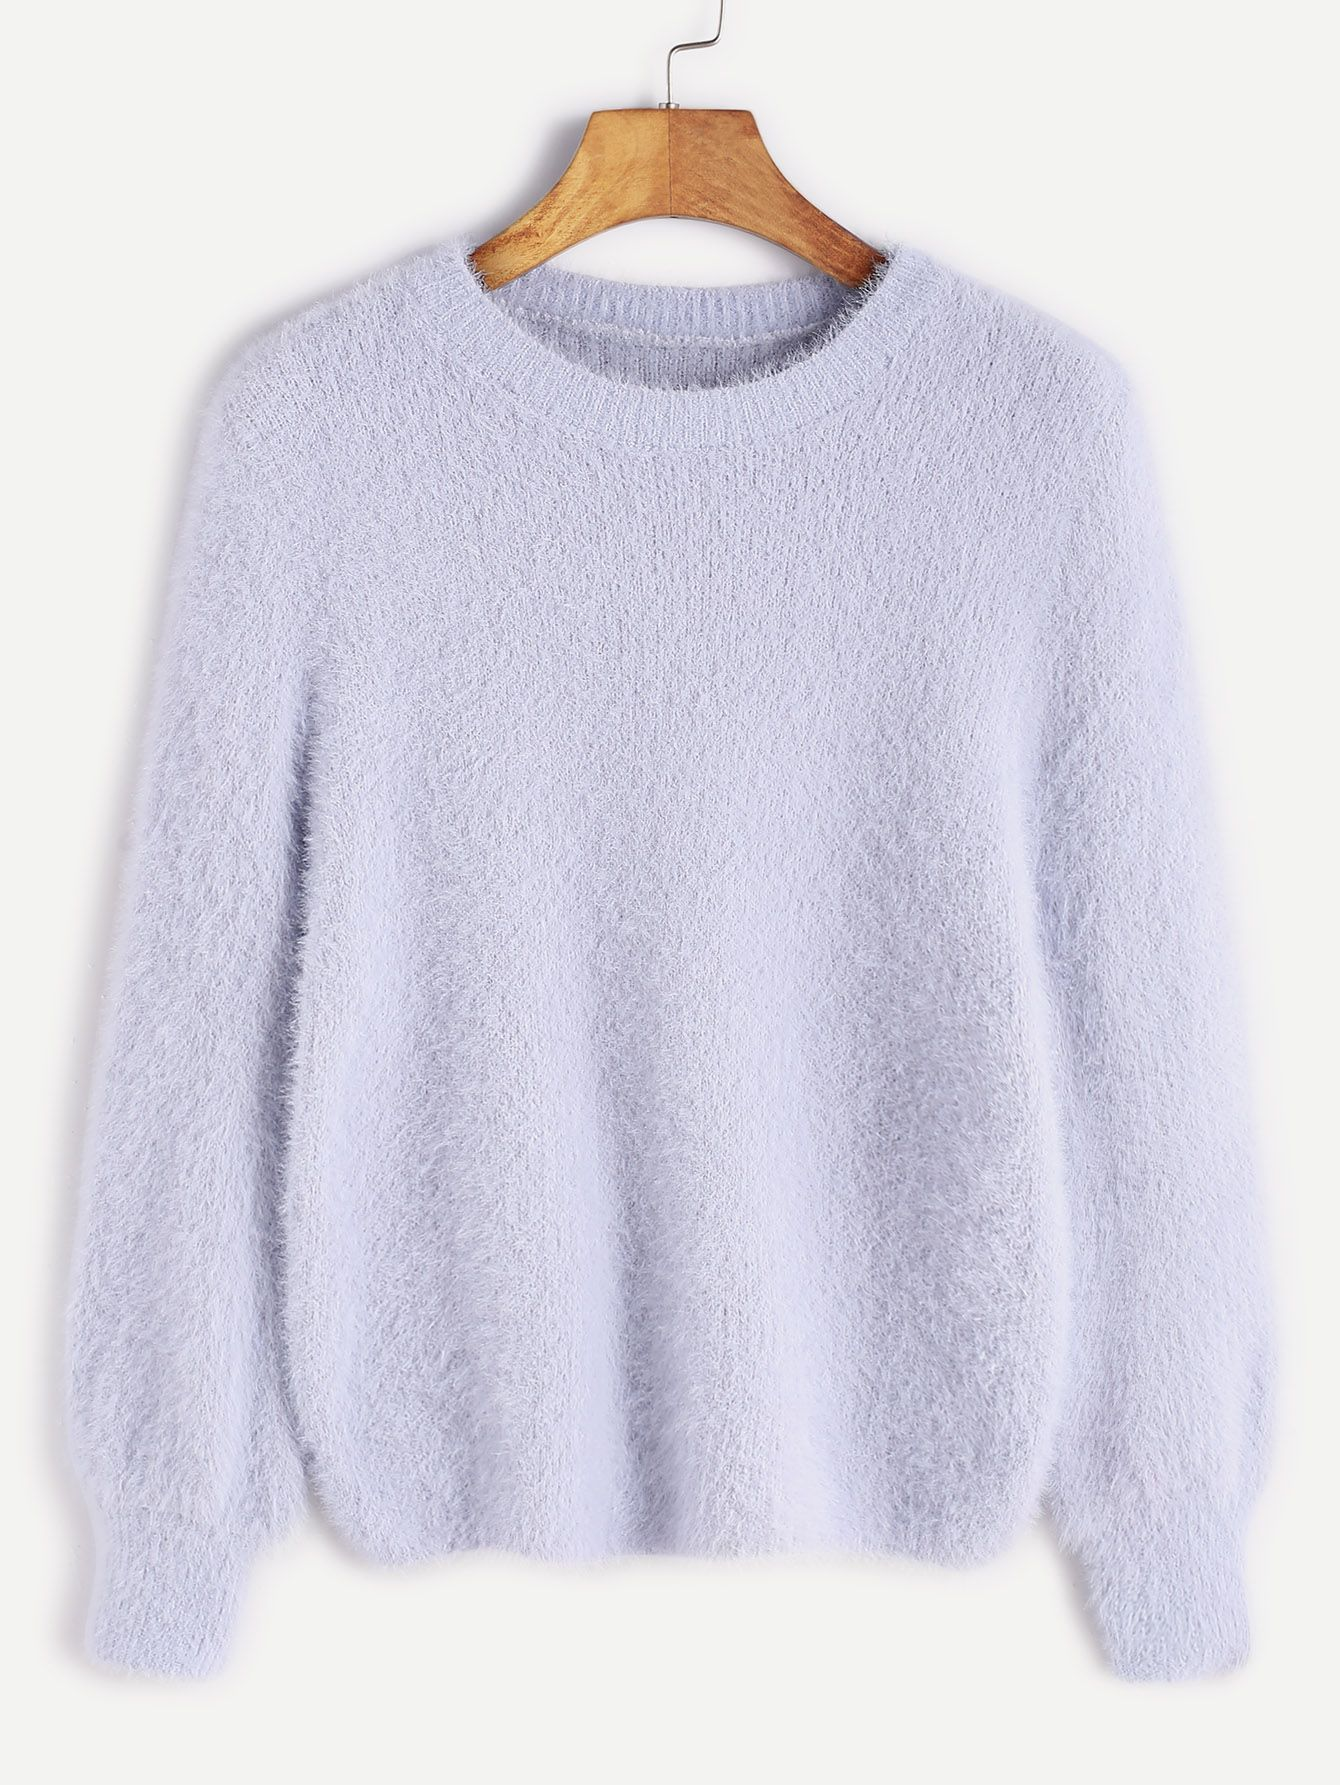 Pale Blue Long Sleeve Fuzzy Sweater — 0.00 € --------------------color: Blue size: one-size